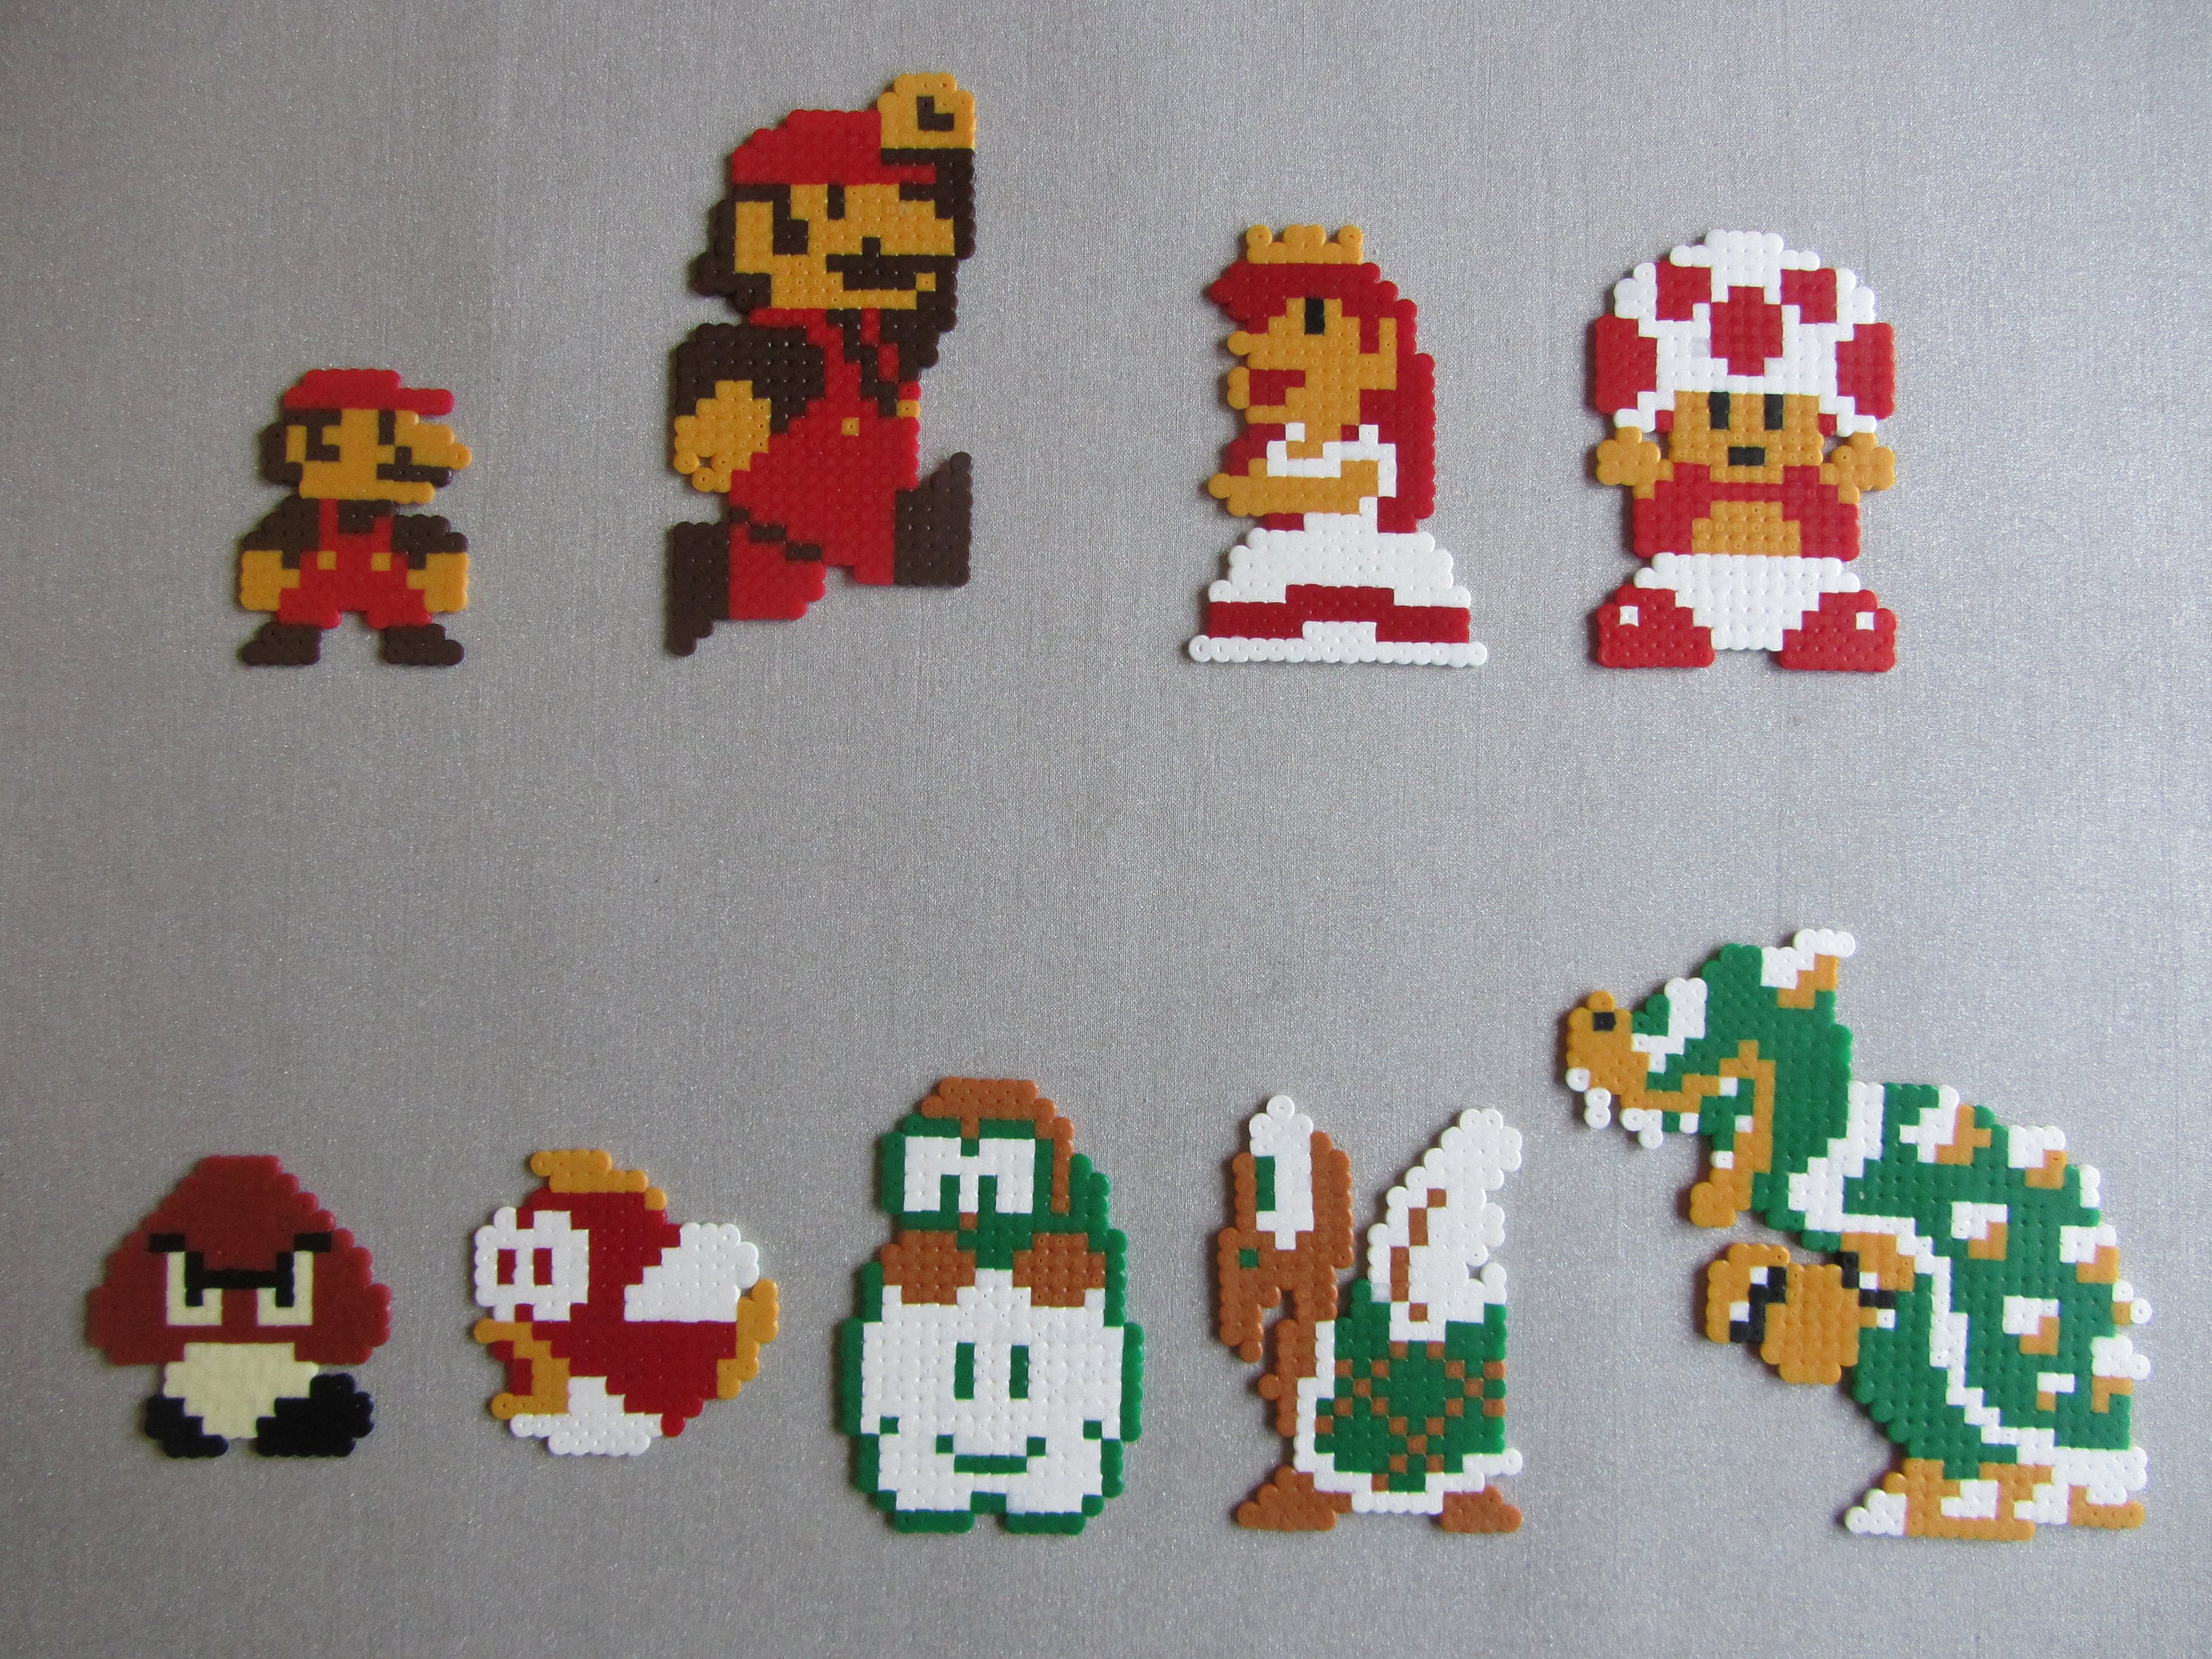 Super Mario Bettwäsche Mario Princess Peach Enemies And Other Characters From Super Mario Bros On The Nes Hama Bead Pixel Creation